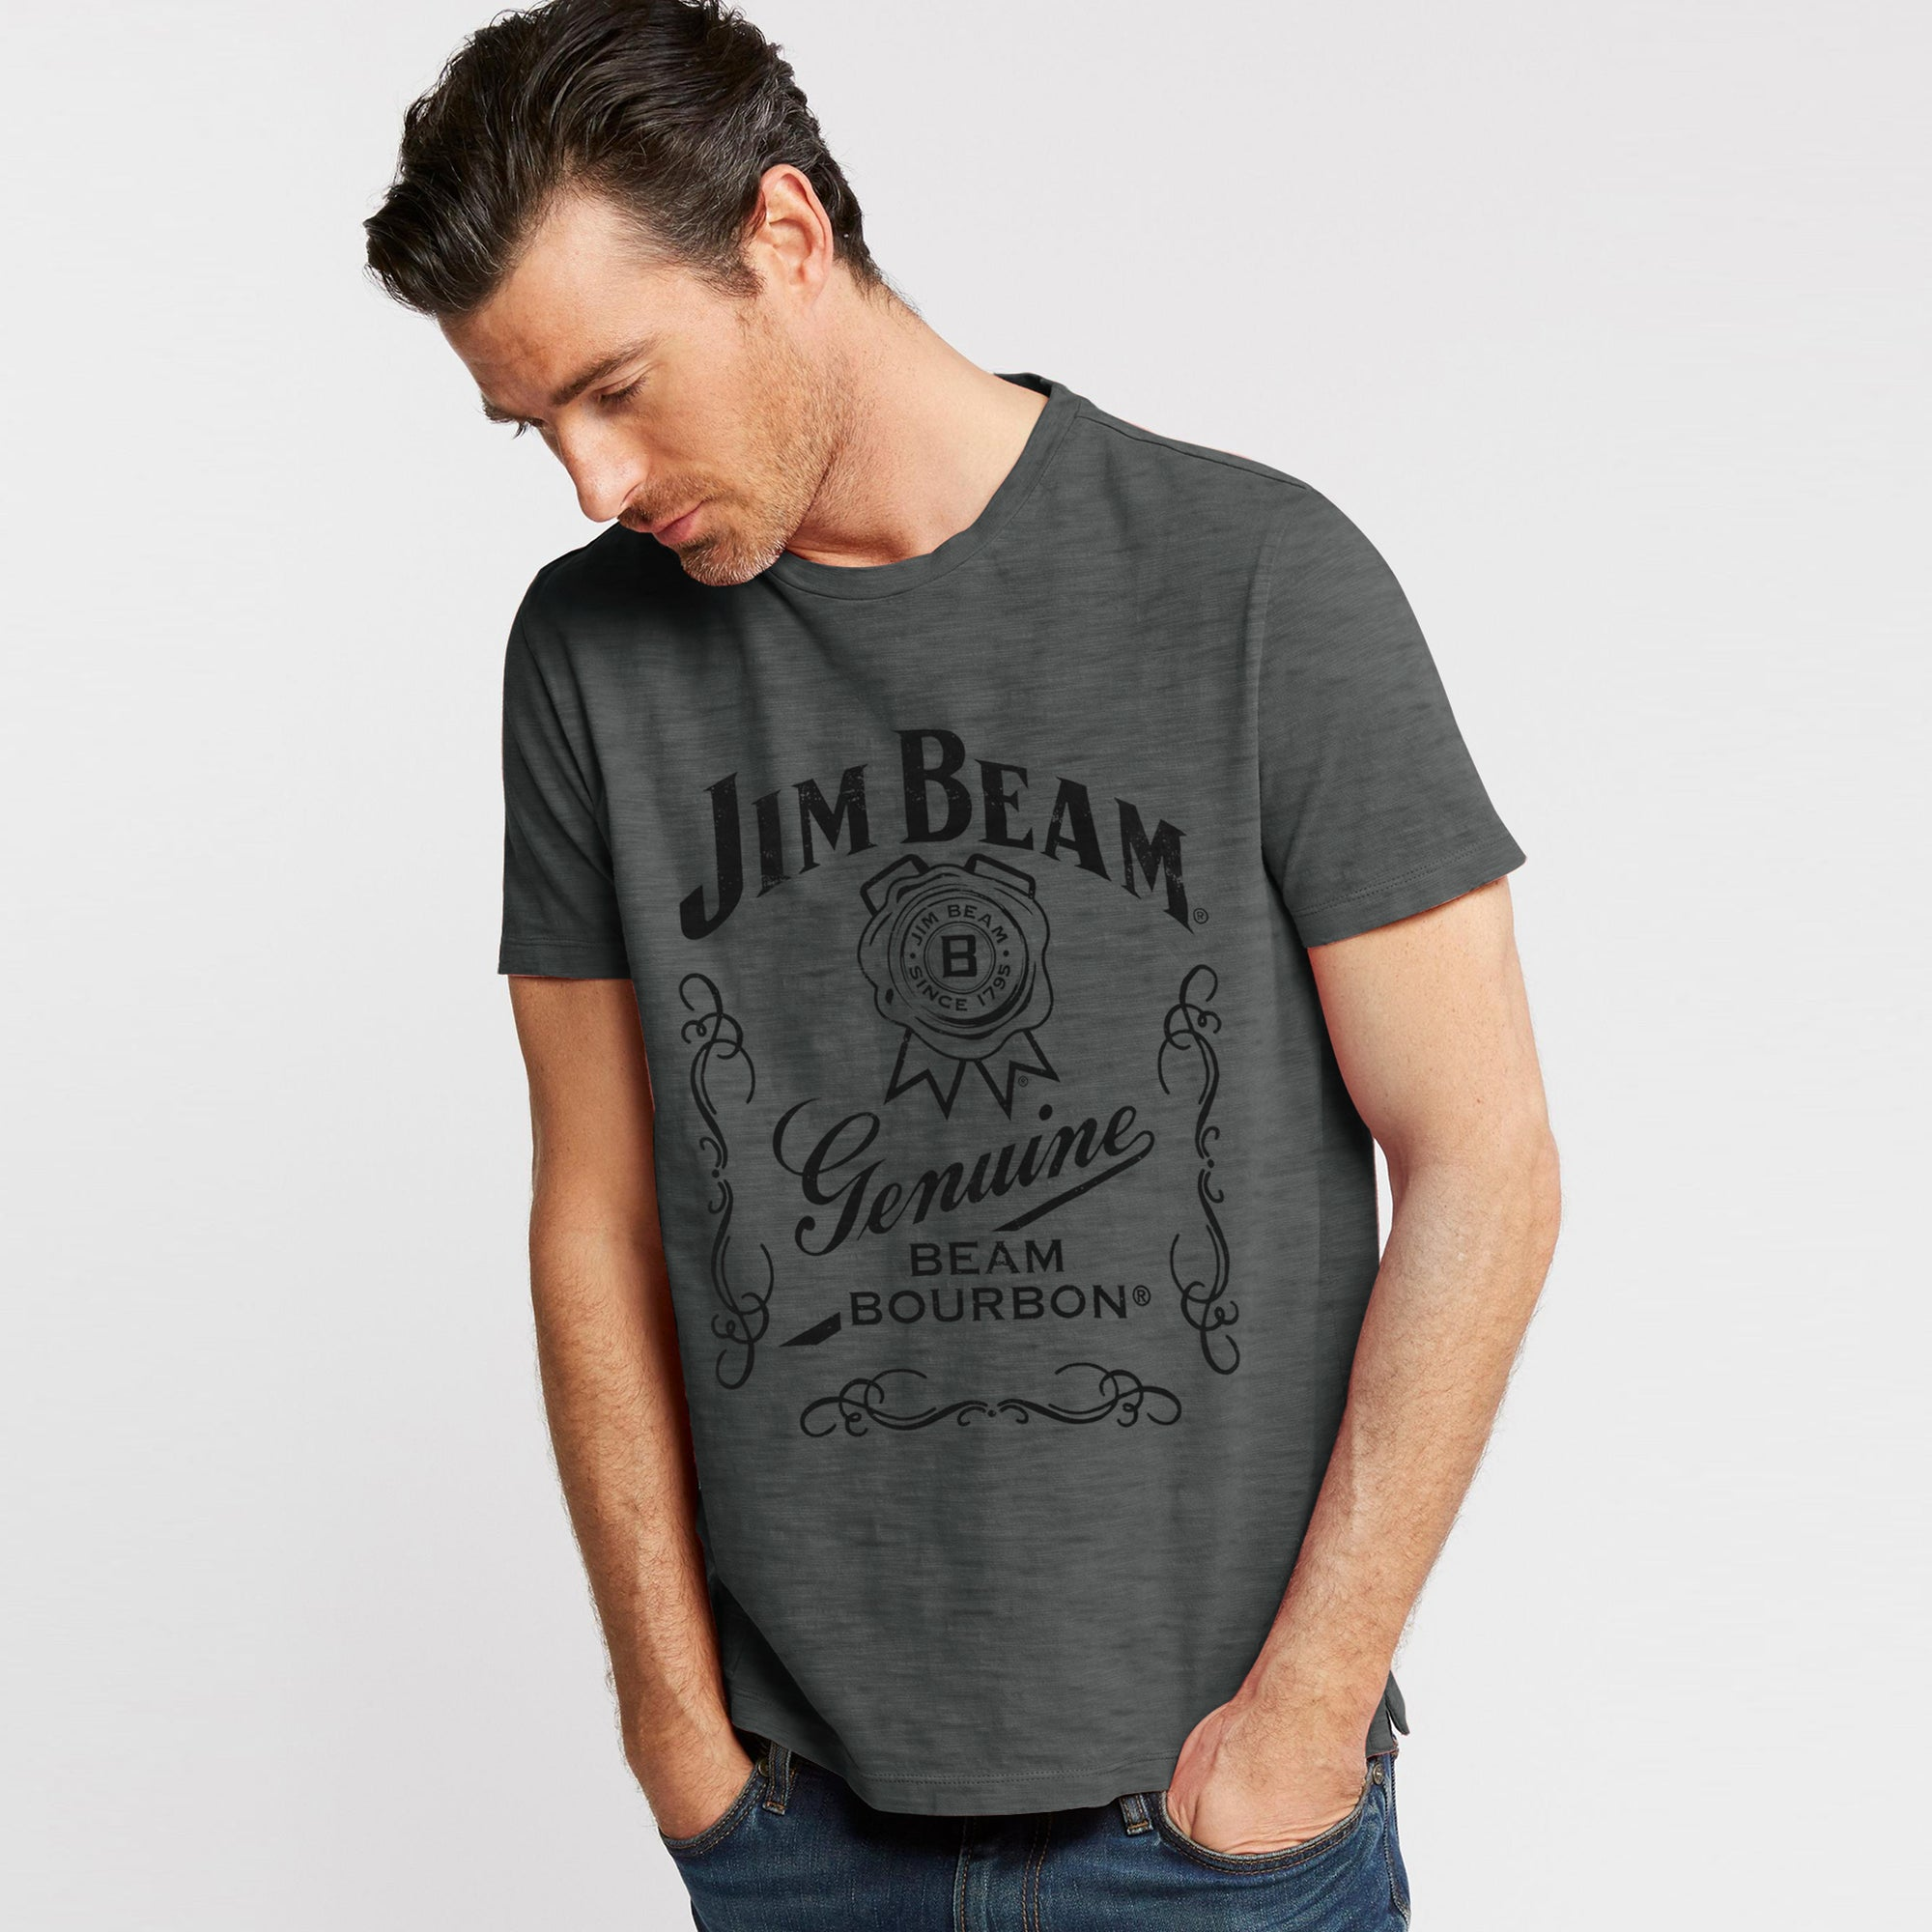 JM Beam Crew Neck Single Jersey Tee Shirt For Men-Dark Grey Melange-BE8340